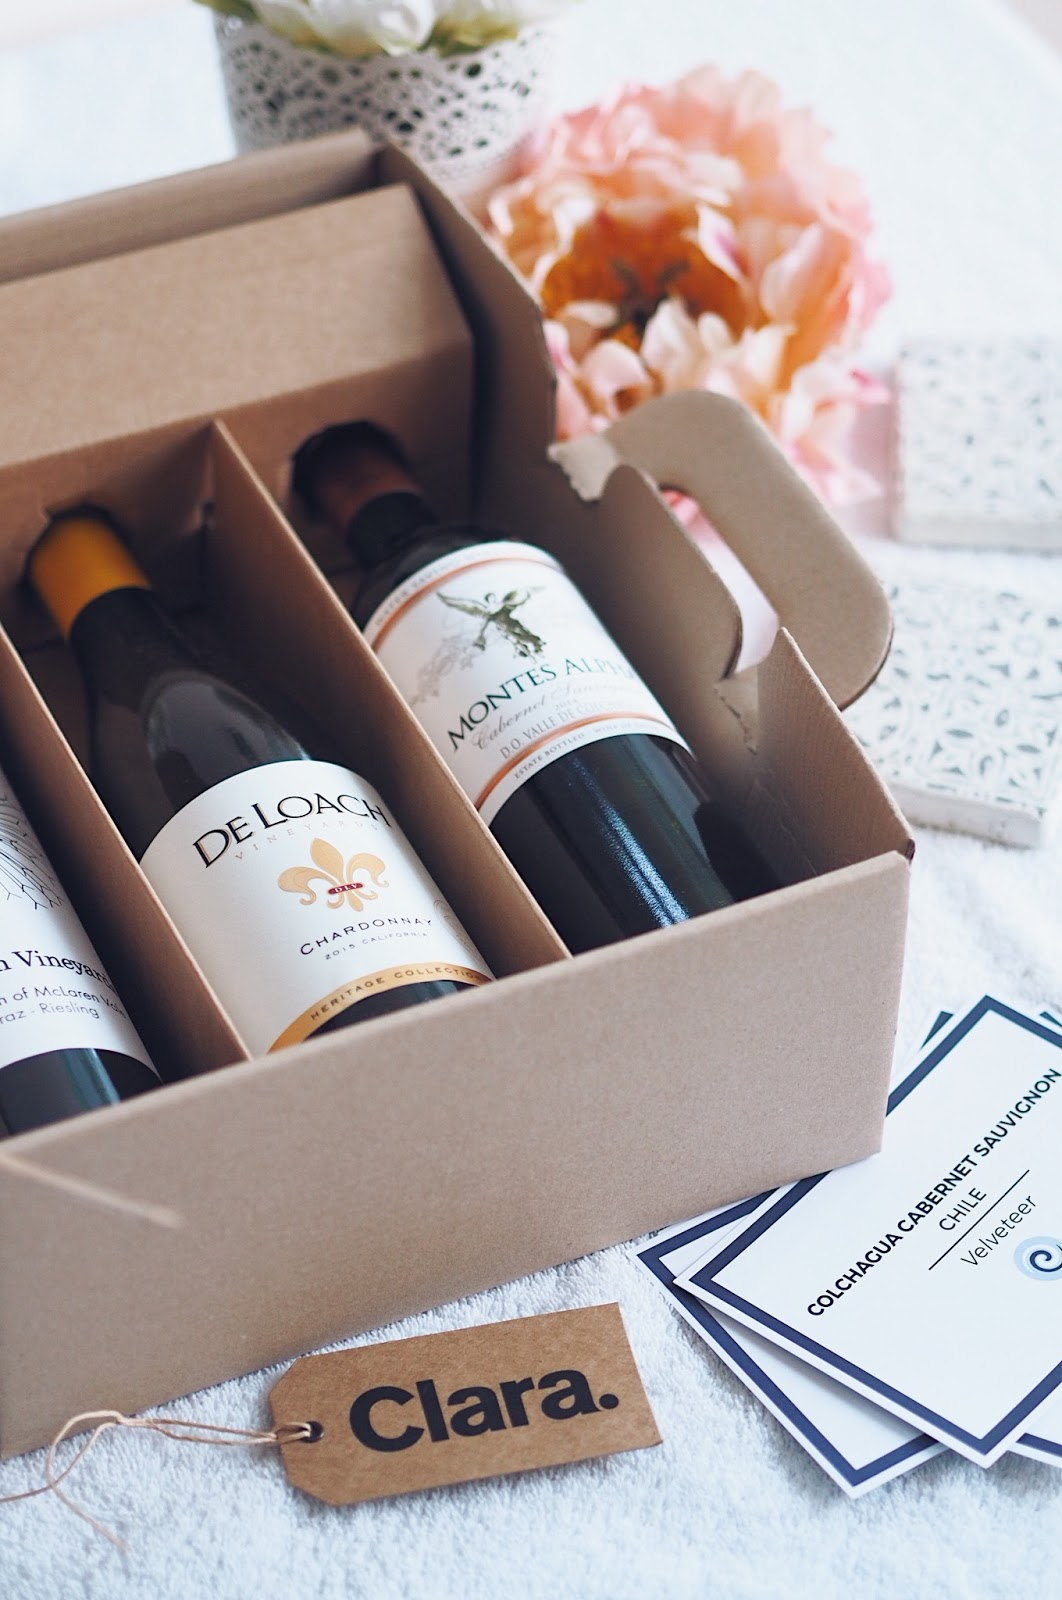 Brown cardboard box containing bottles of wine